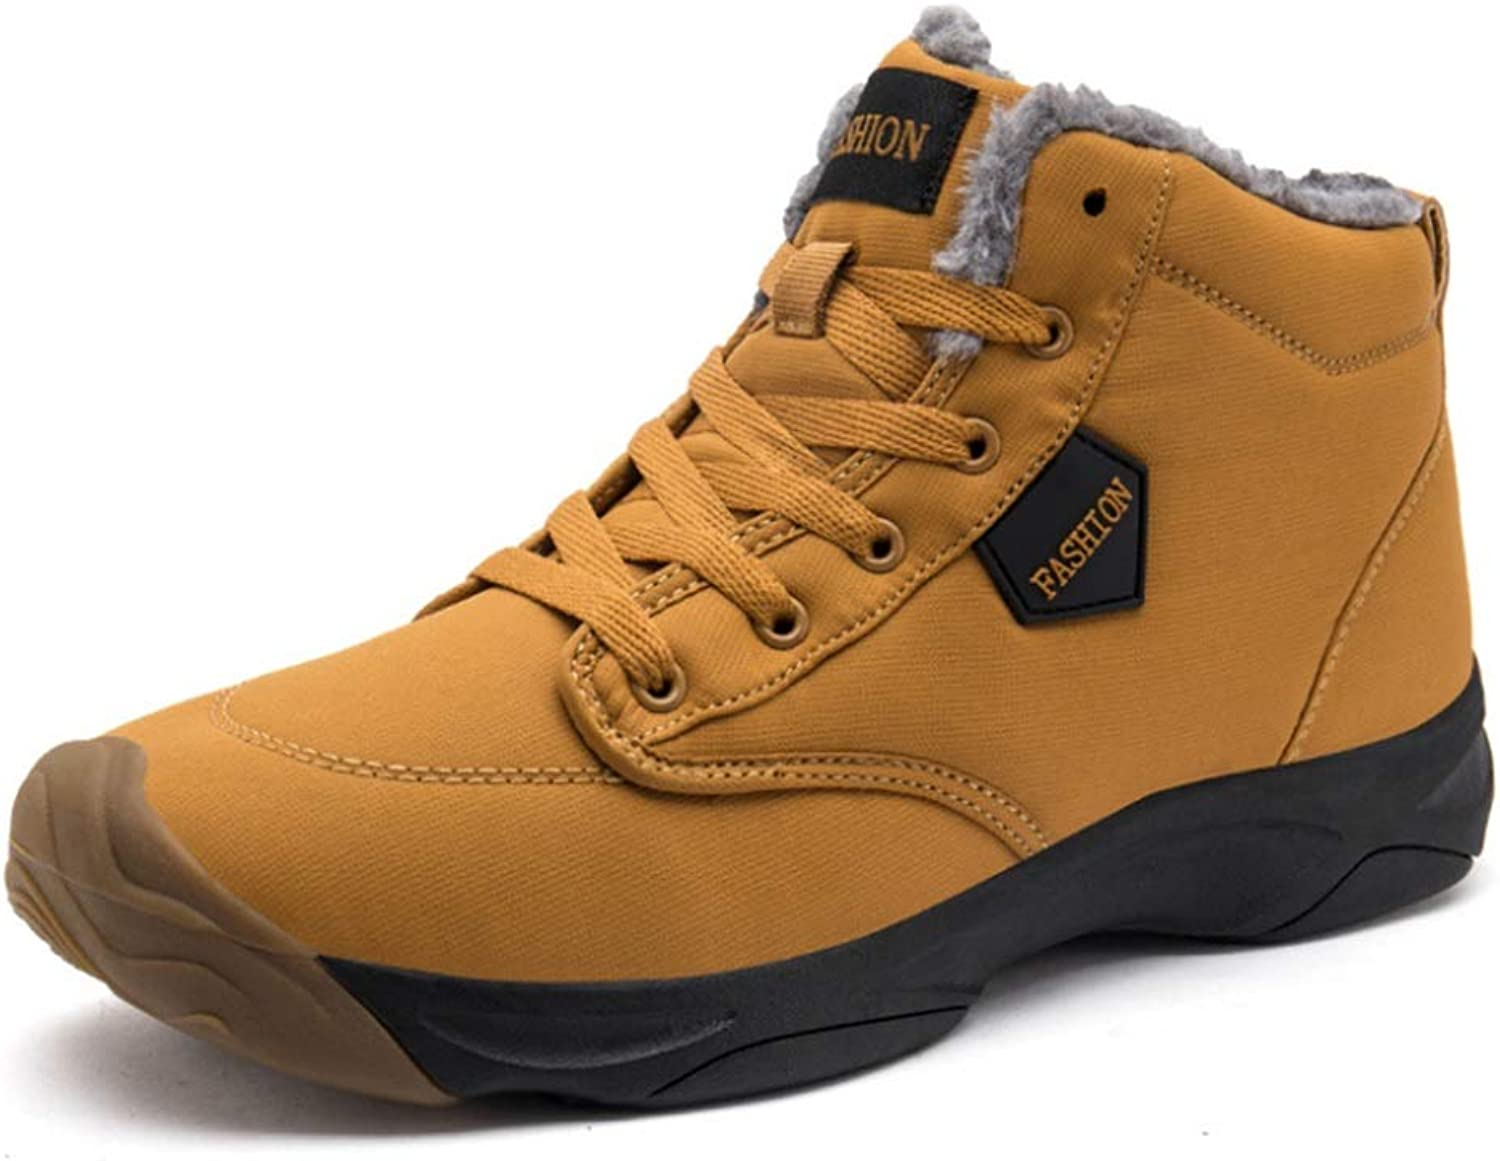 Mens Winter Warm Leather Waterproof Snow Sneakers Anti Slip Lightweight Outdoor Boots High Top Sport shoes (color   Yellow, Size   9 US)